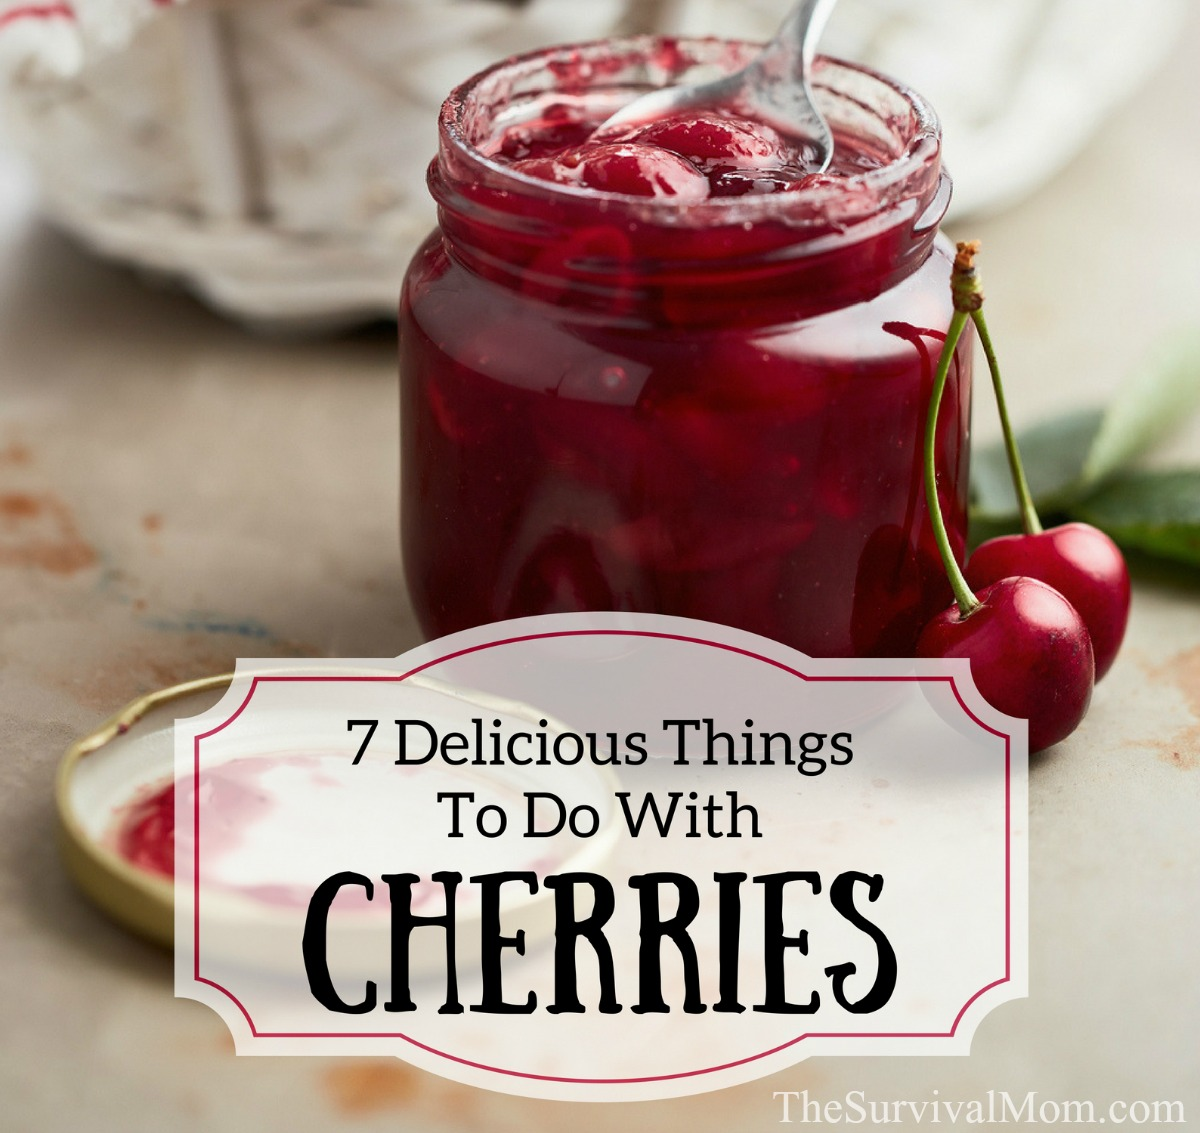 Sweet cherry jam: Top 7 delicious recipes for the winter 19